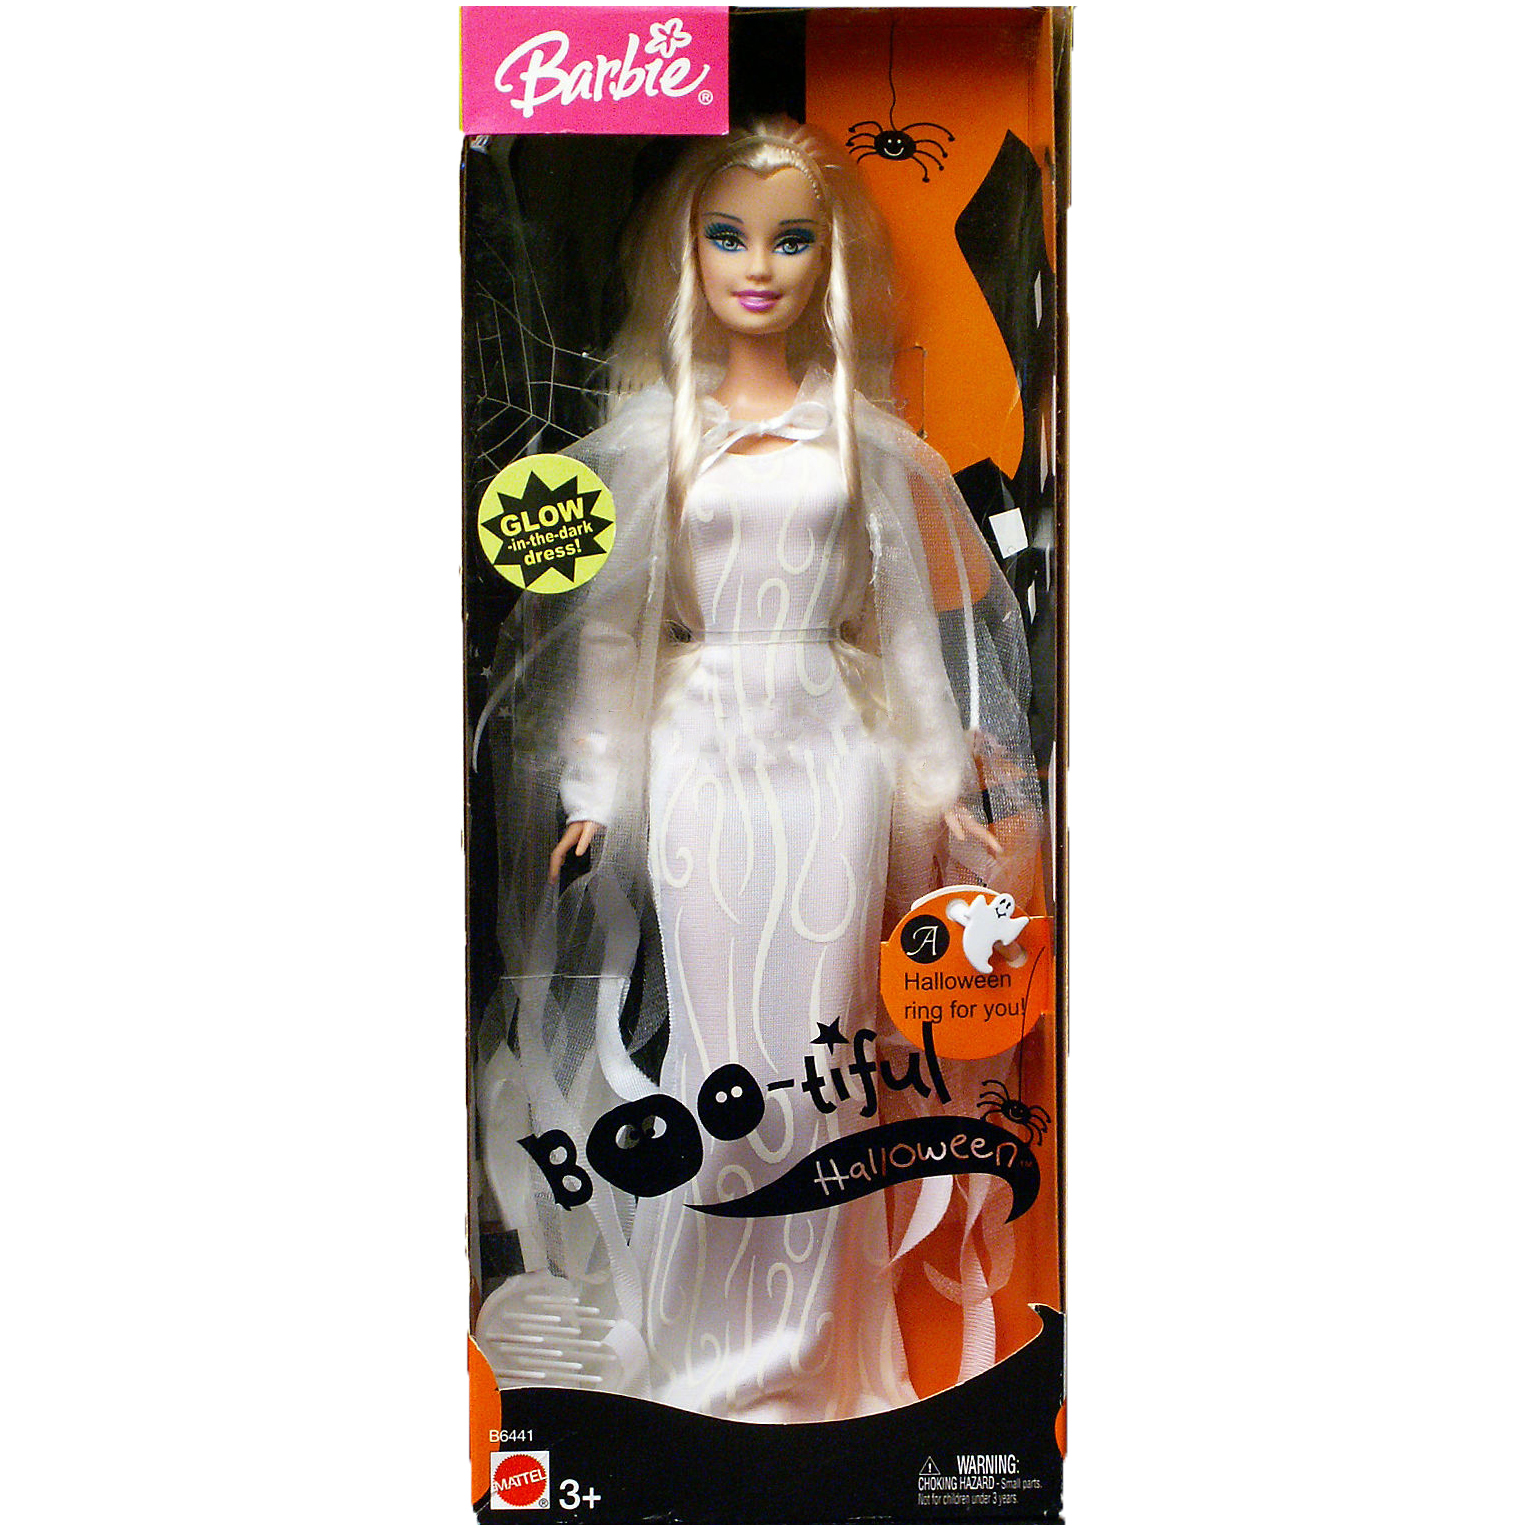 Image result for 2004 Boo-tiful Halloween Barbie